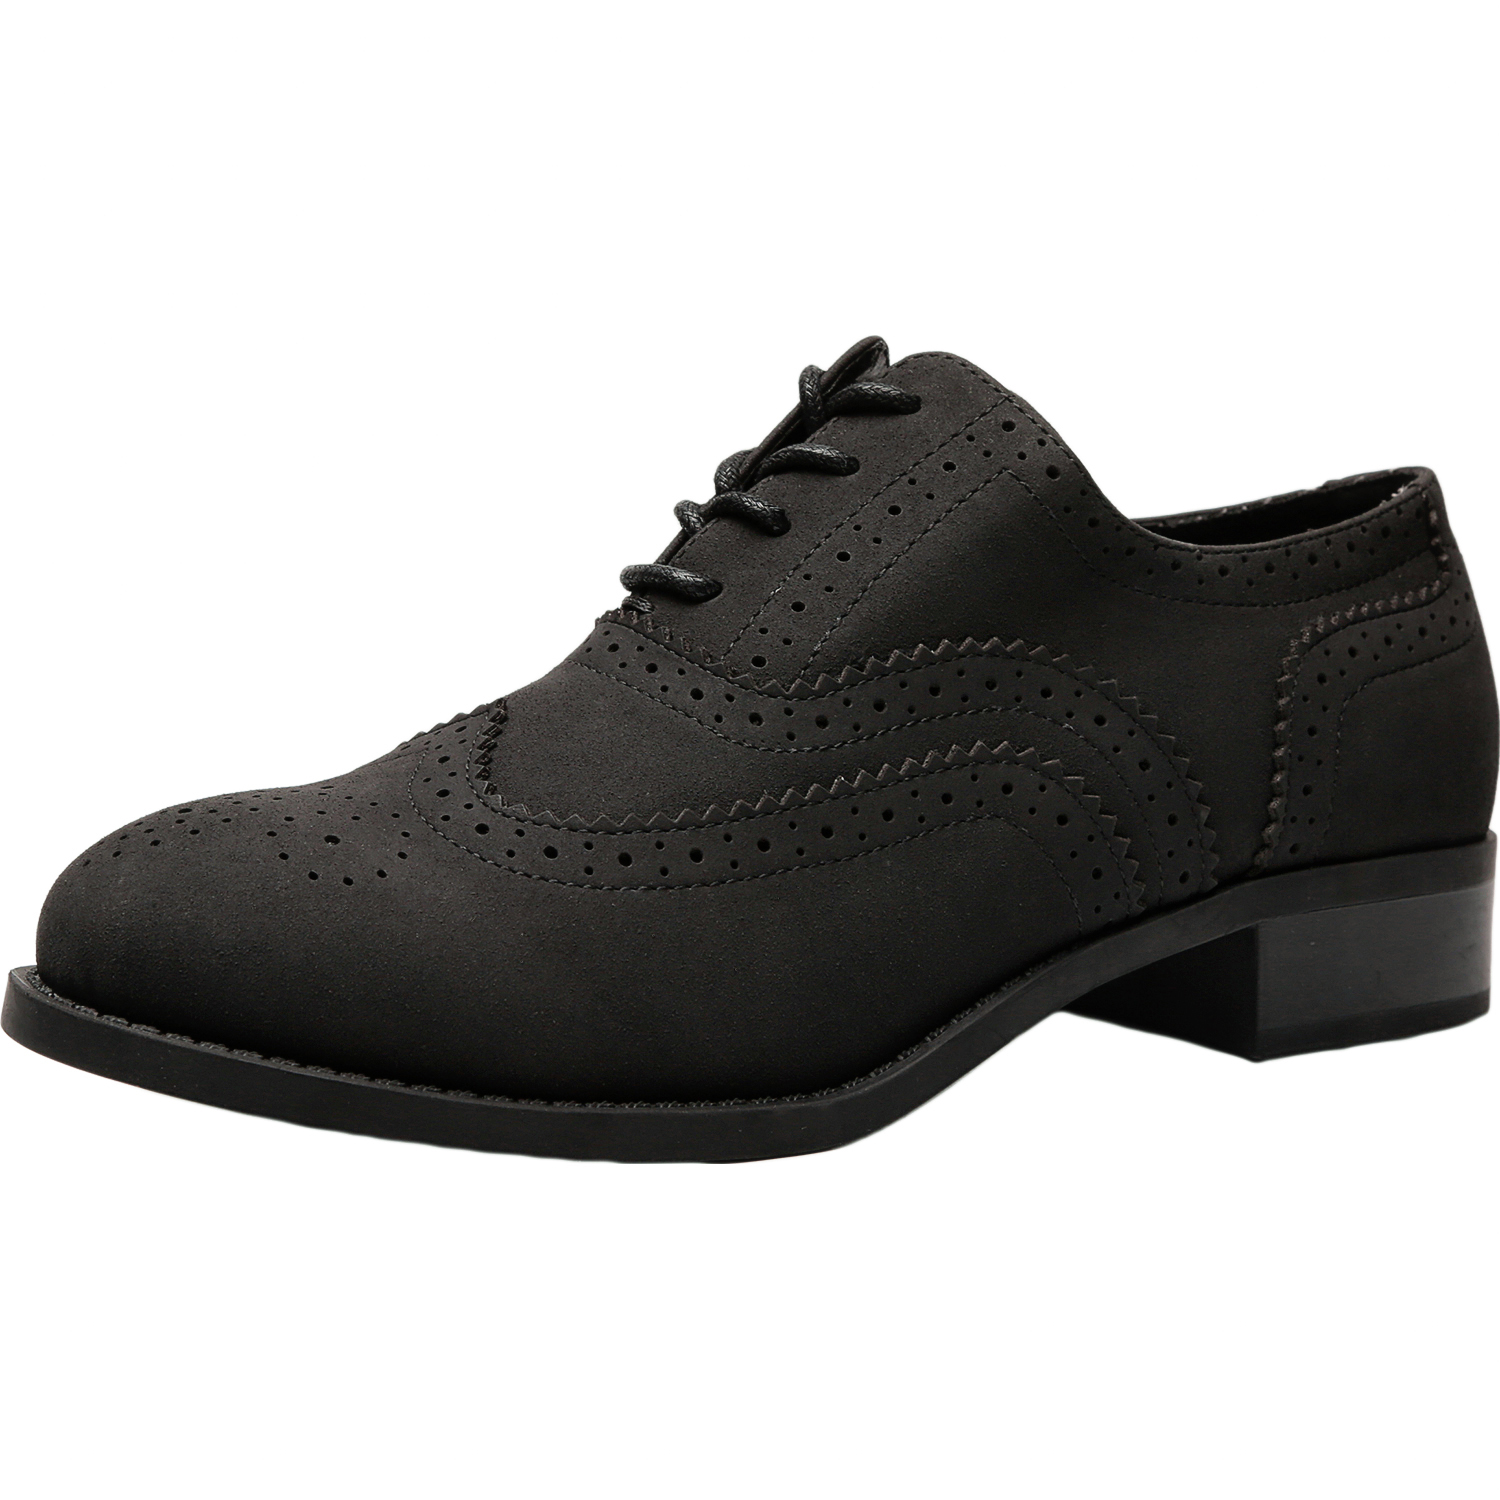 c20612cbfb5 Women's Wide Width Brogue Oxfords - Classic Lace up Low Heel Urban Formal  Oxford Shoes.